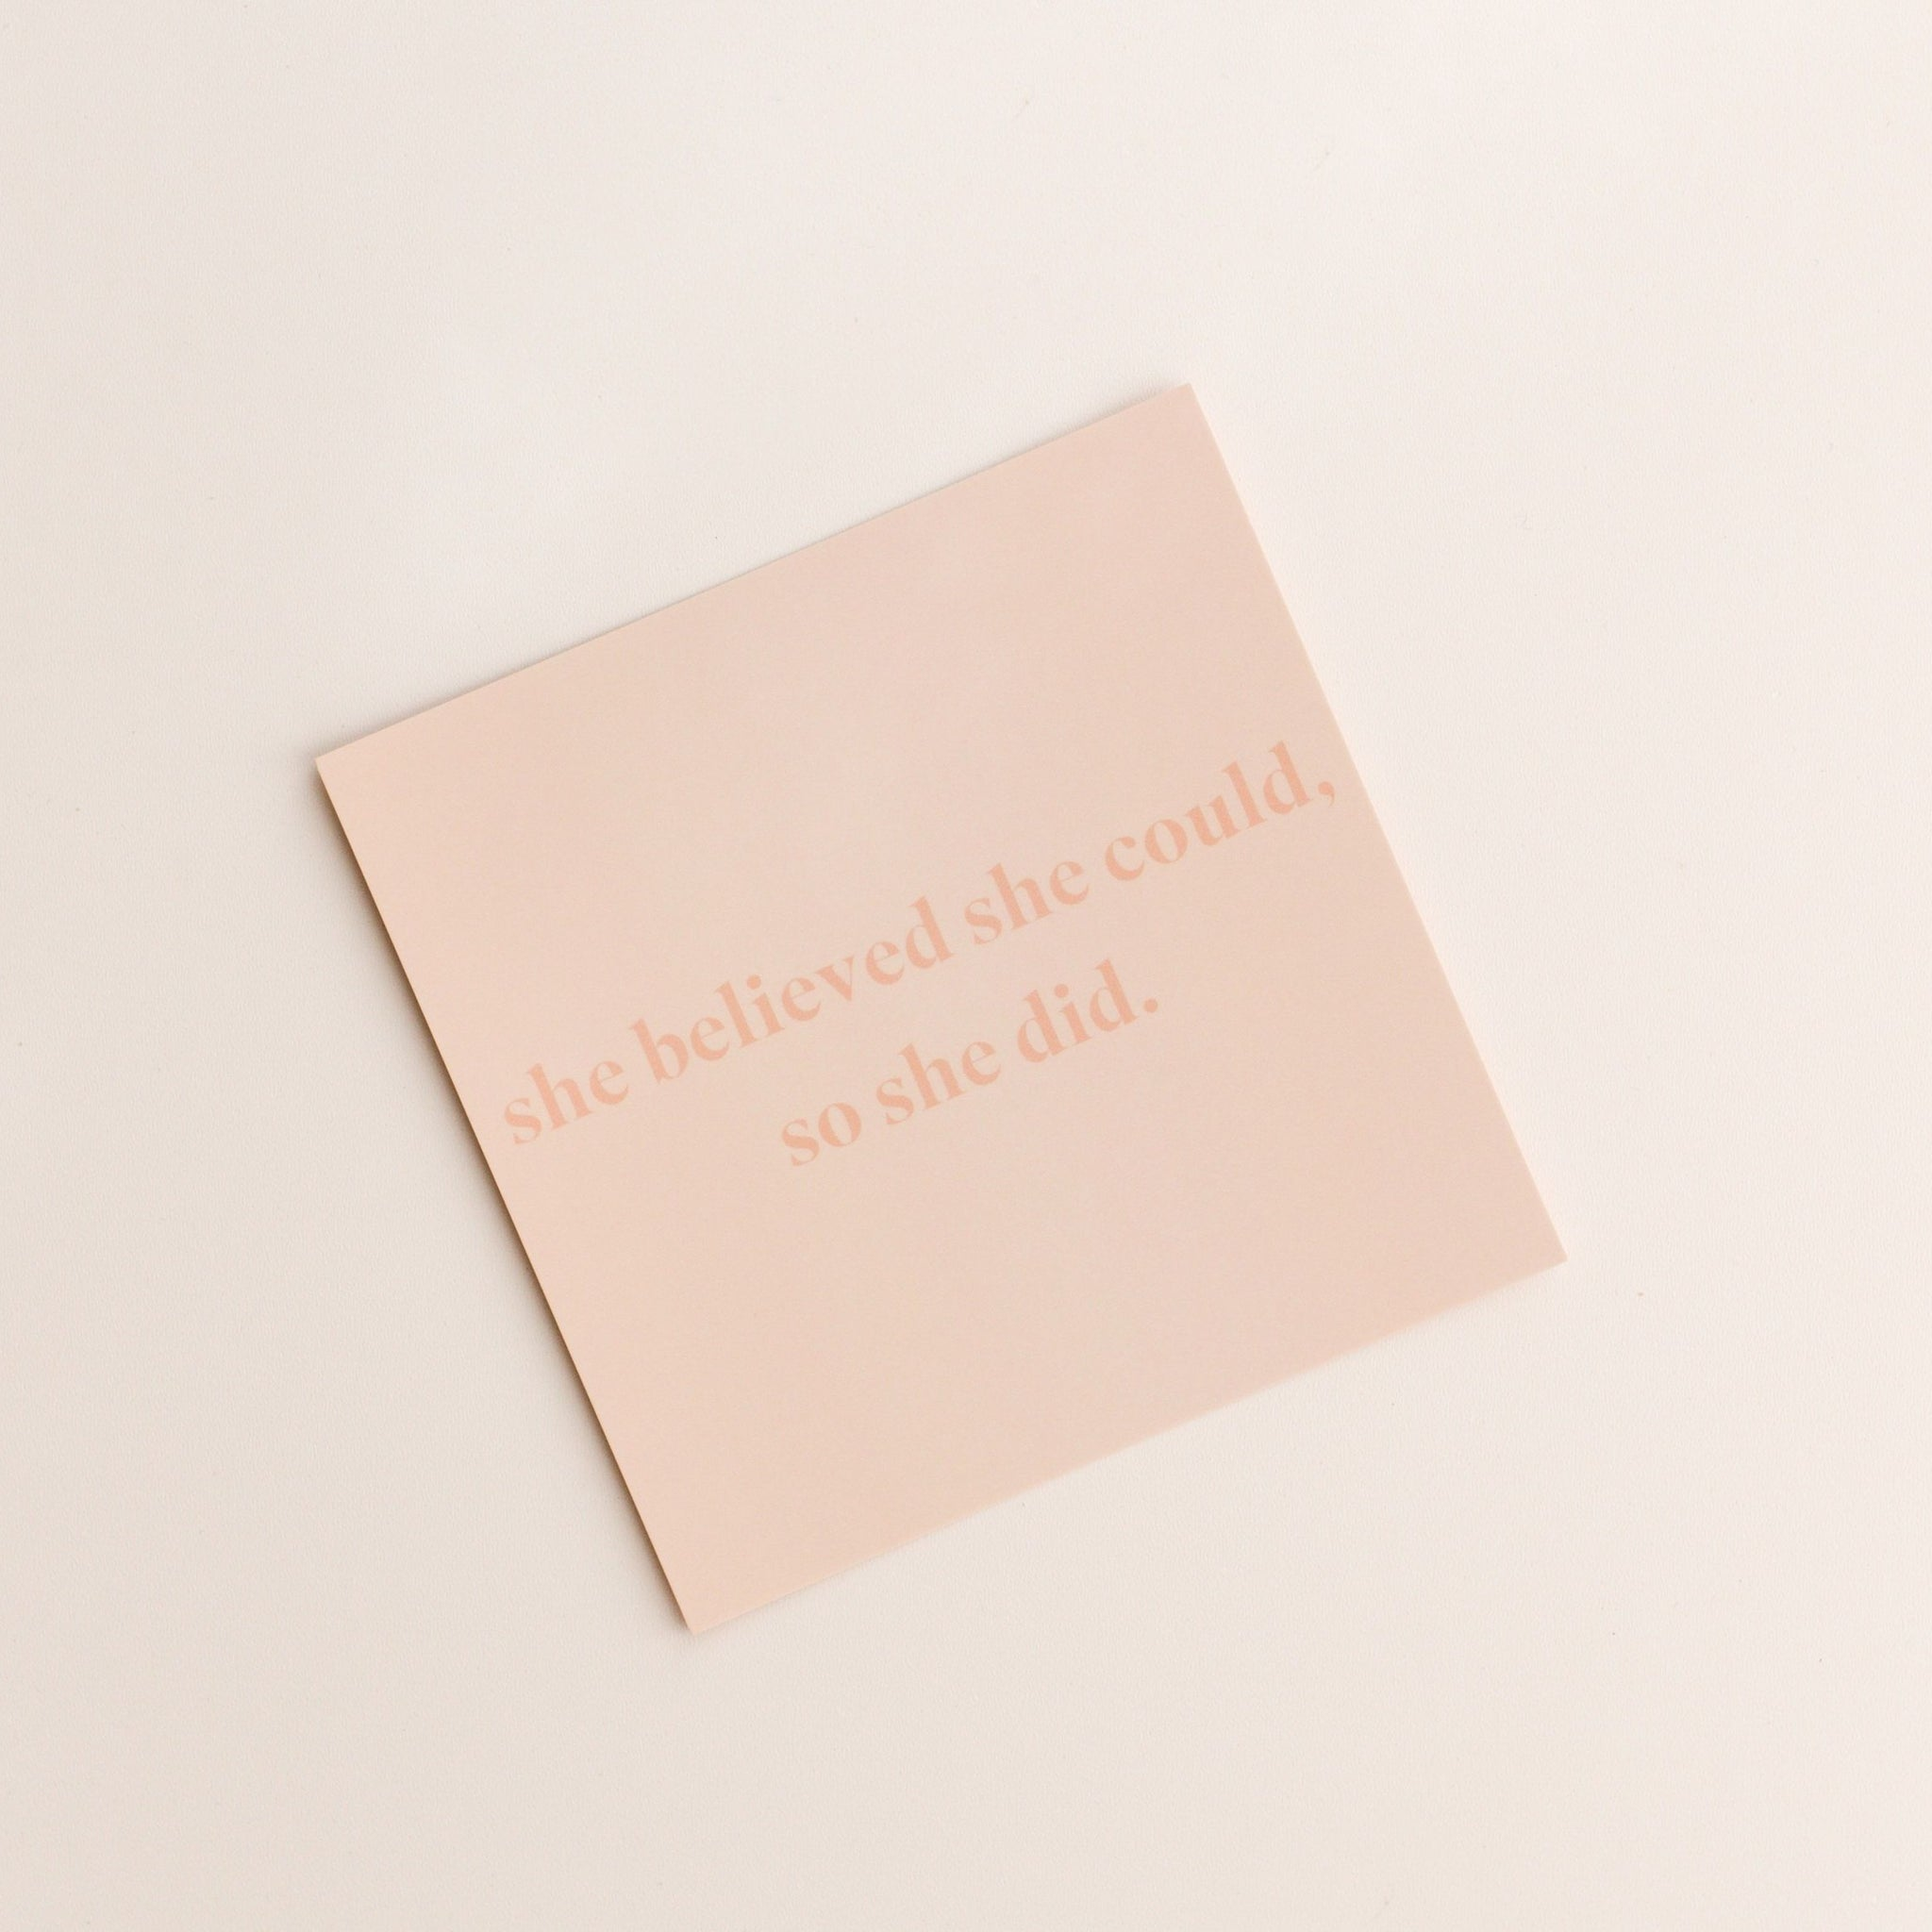 she believed she could, so she did | gift card